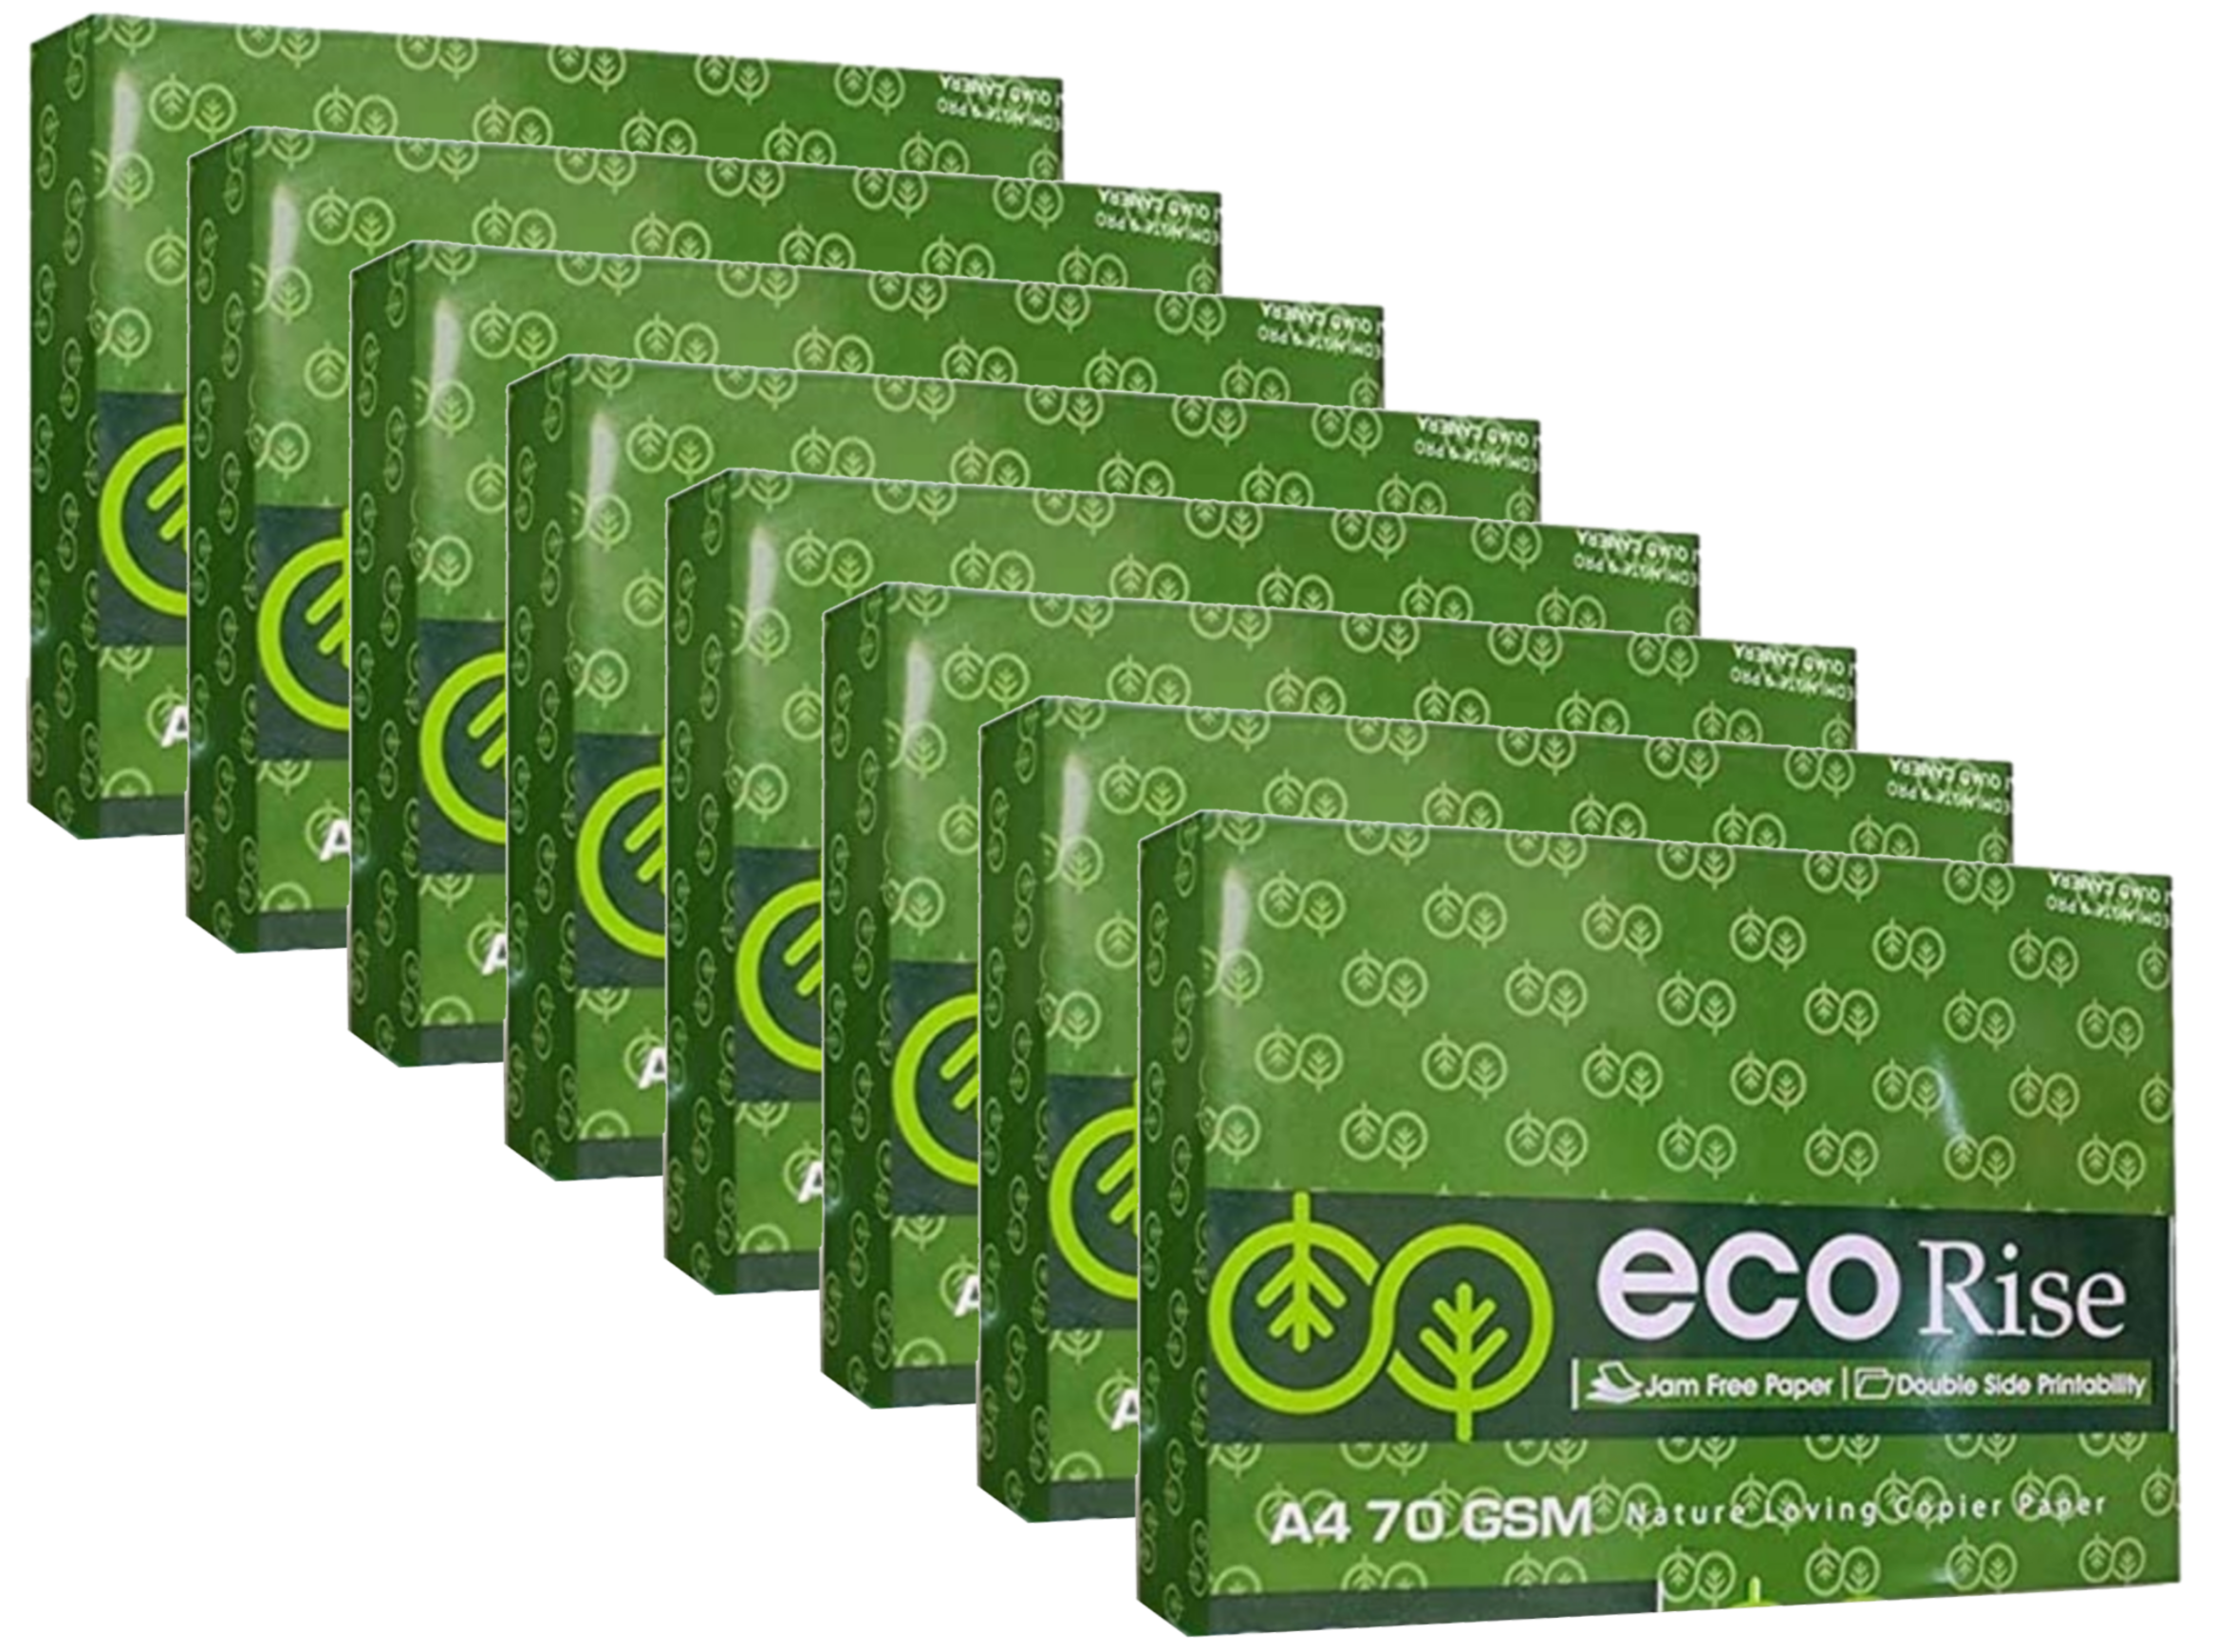 Eco Rise Printing Copy A4 Size JK Paper Eco Tree Friendly 70 GSM 500 Sheet Pack of 8